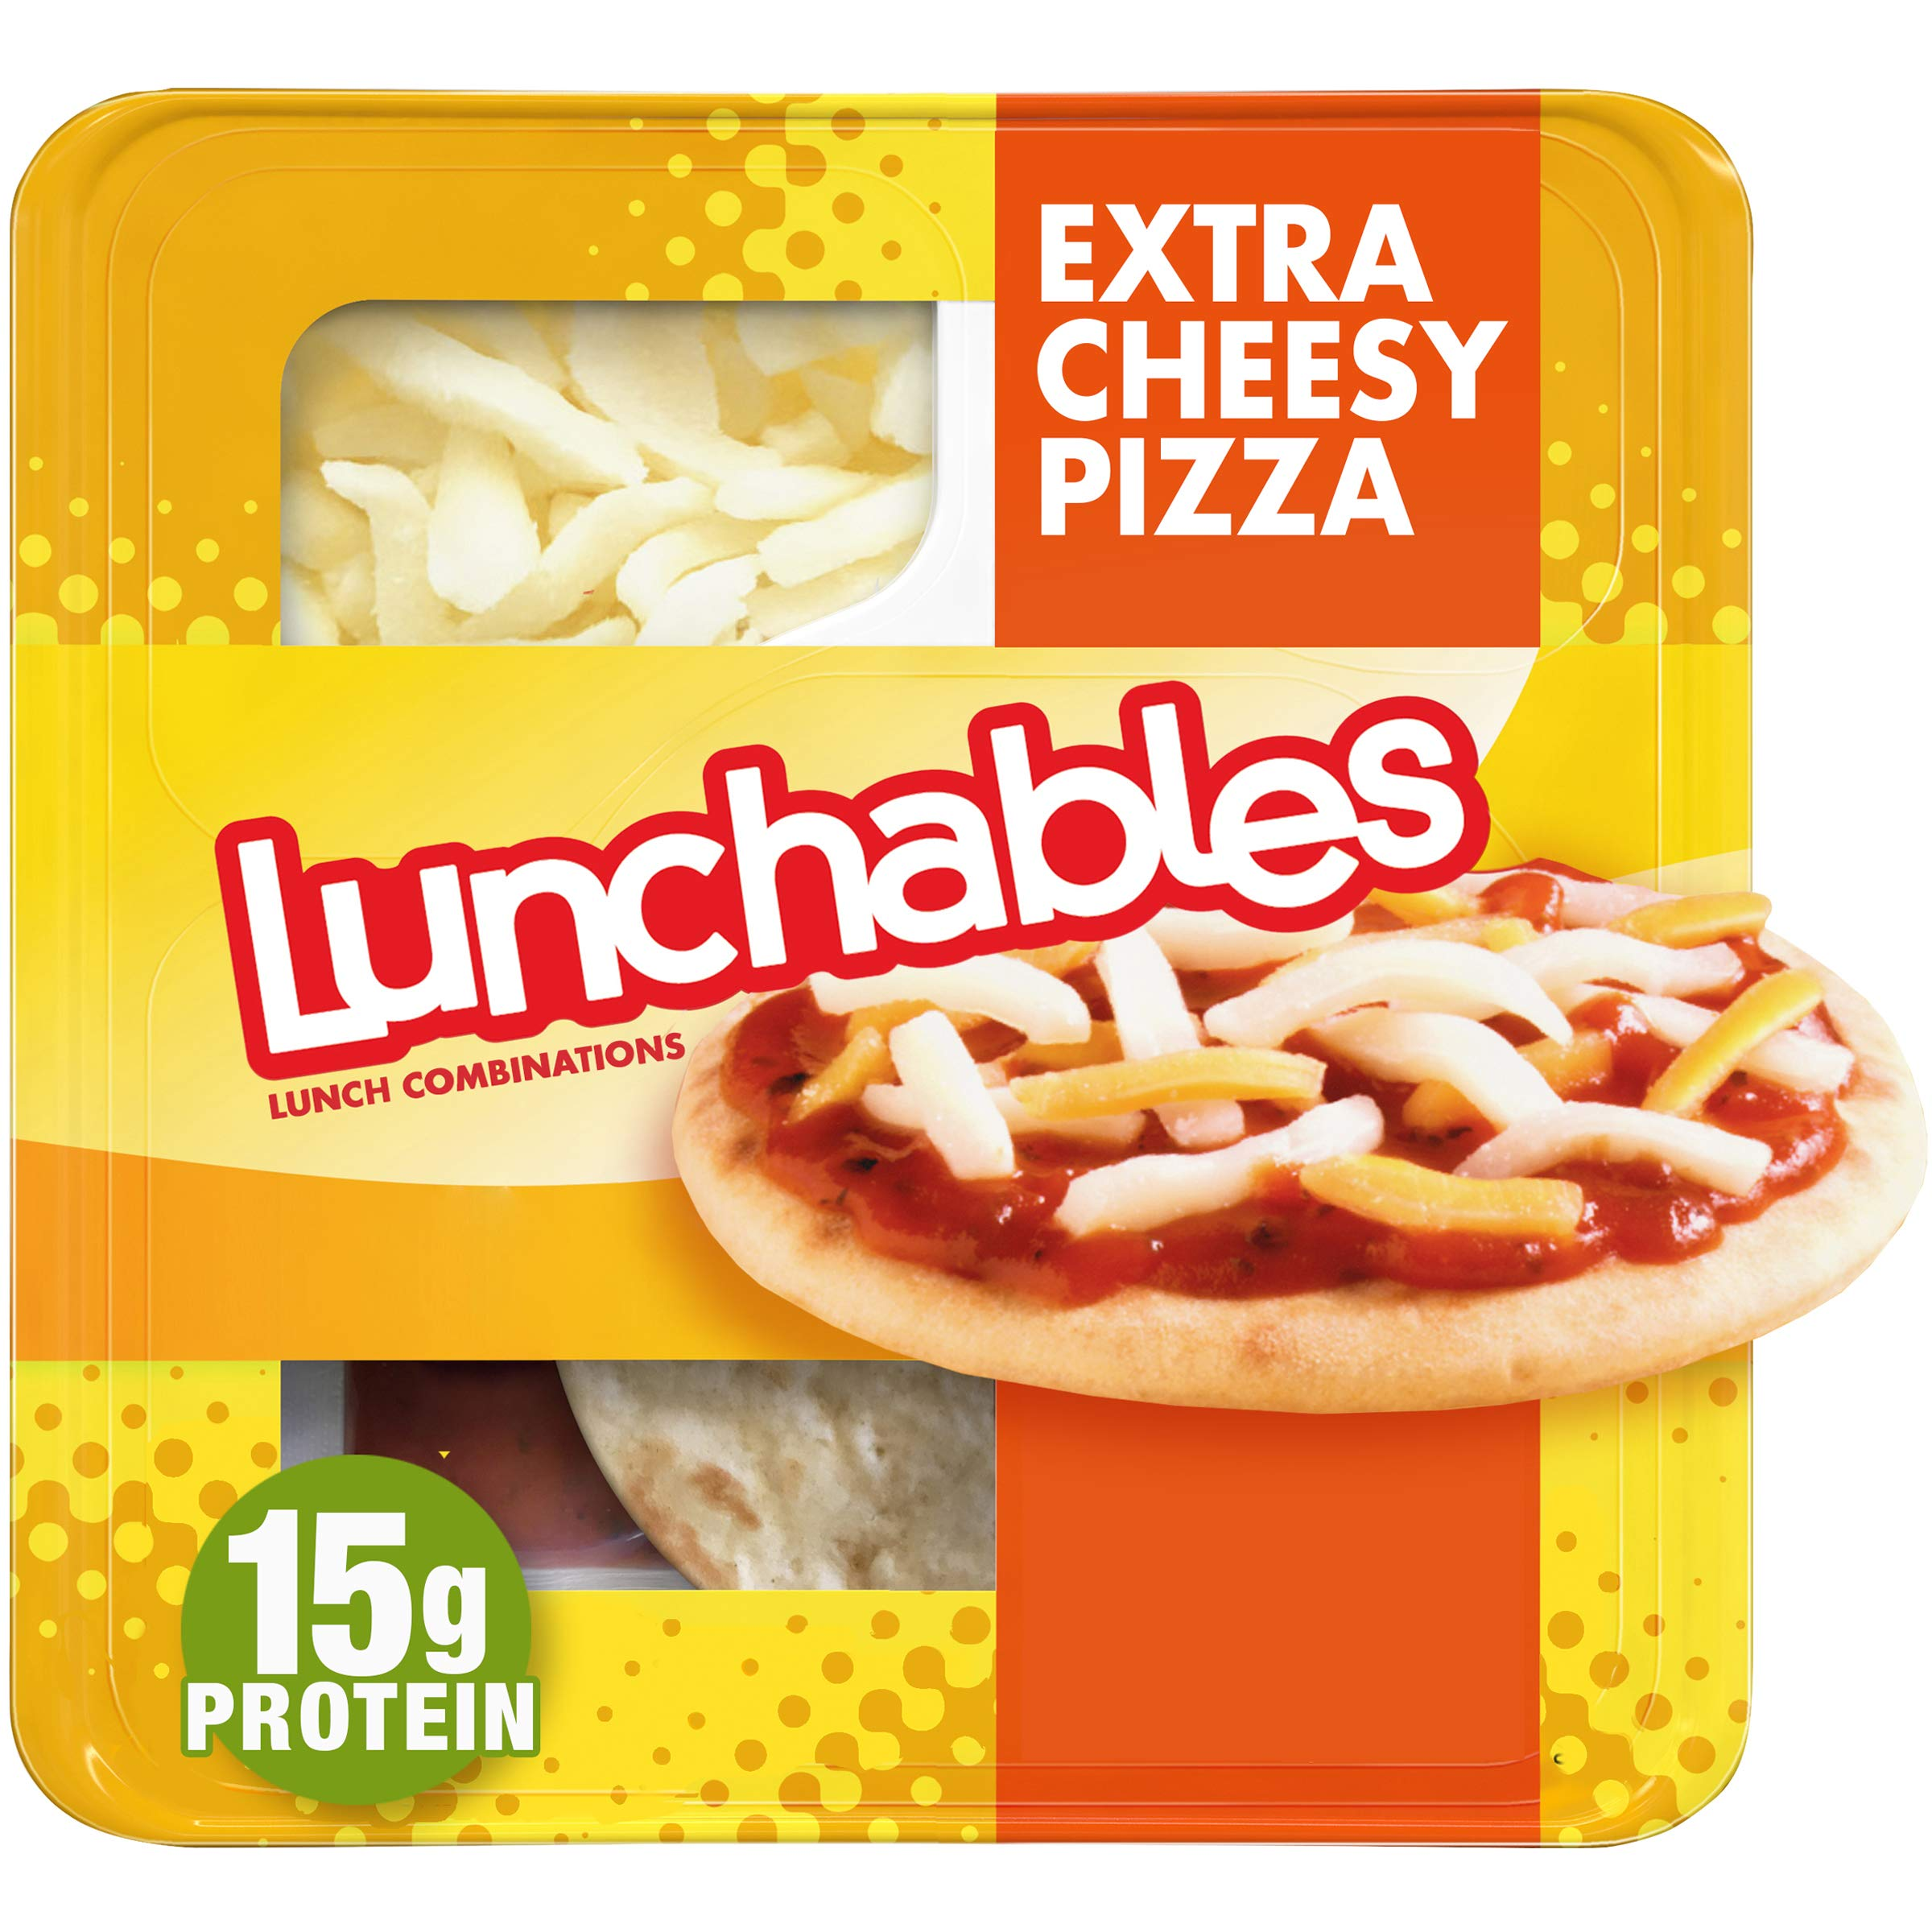 Lunchables Extra Cheesy Pizza with Pizza Sauce Lunch Combination (4.2 oz Tray)